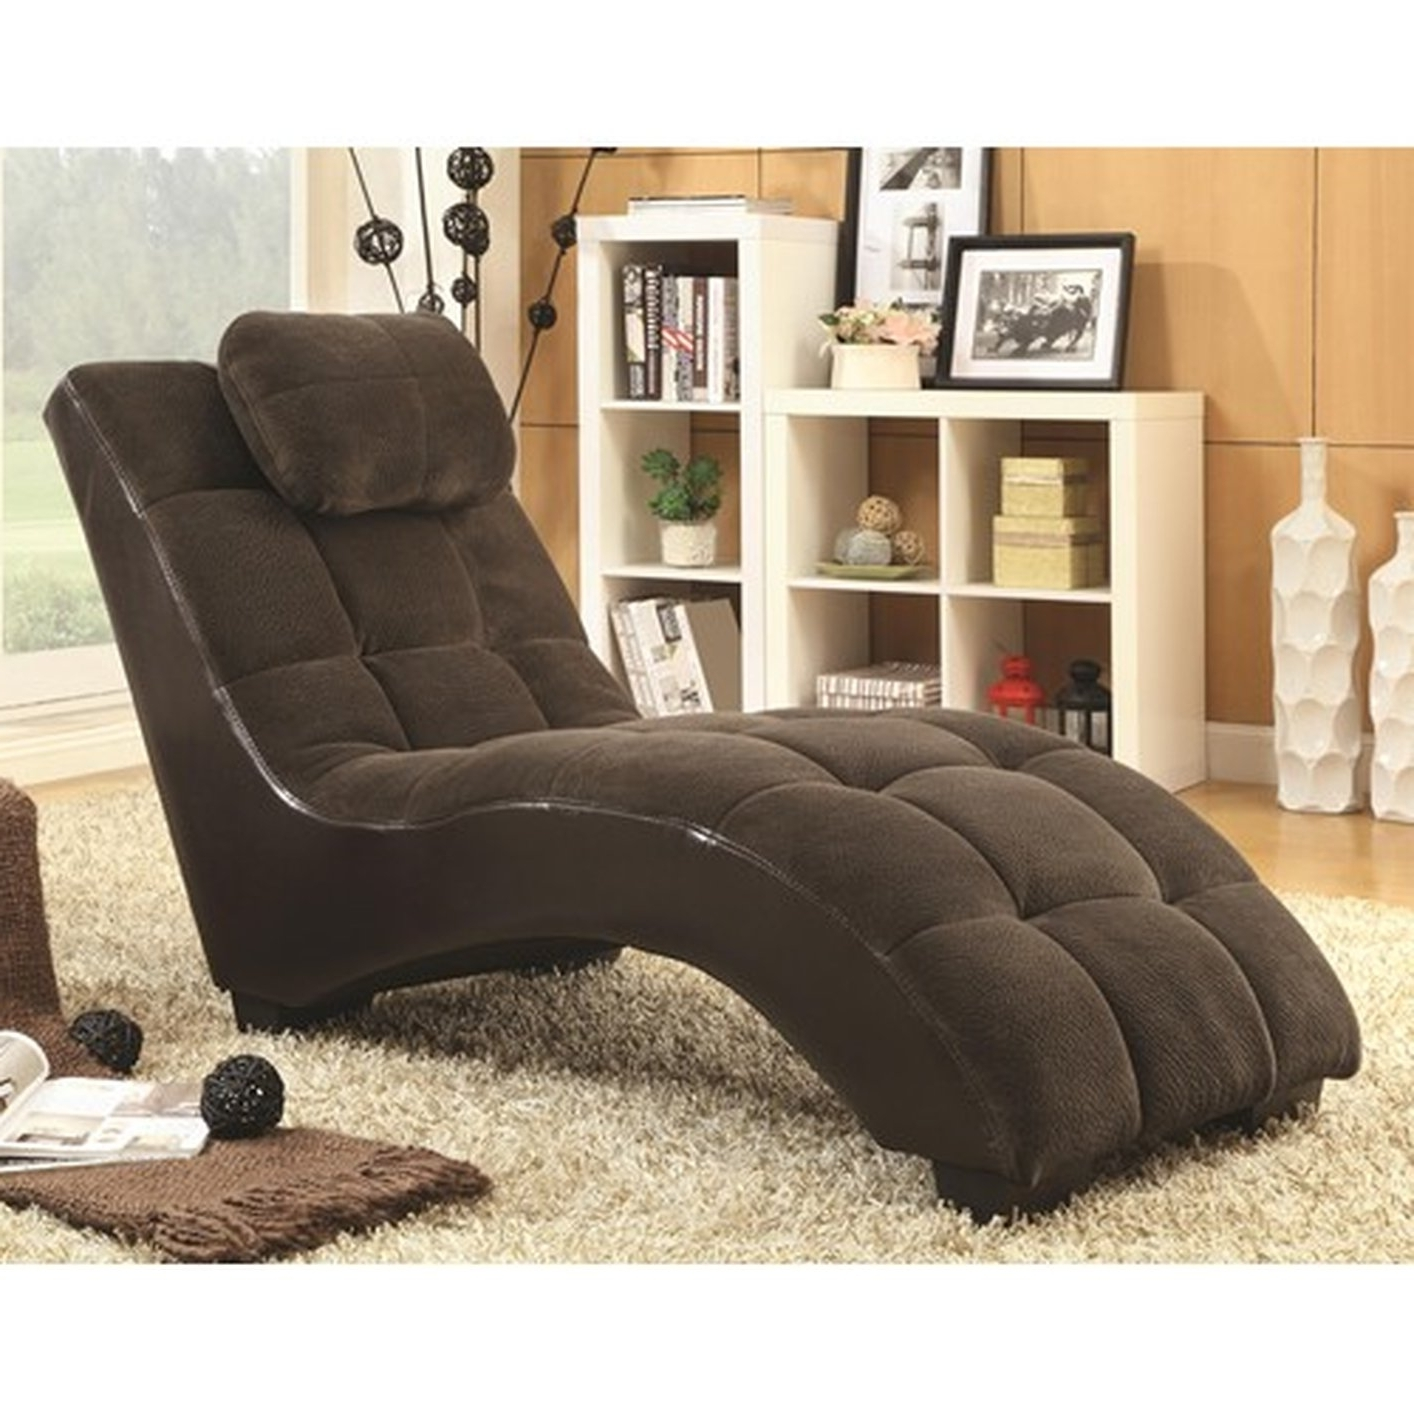 2018 Brown Fabric Chaise Lounge – Steal A Sofa Furniture Outlet Los With Regard To Fabric Chaise Lounge Chairs (View 12 of 15)